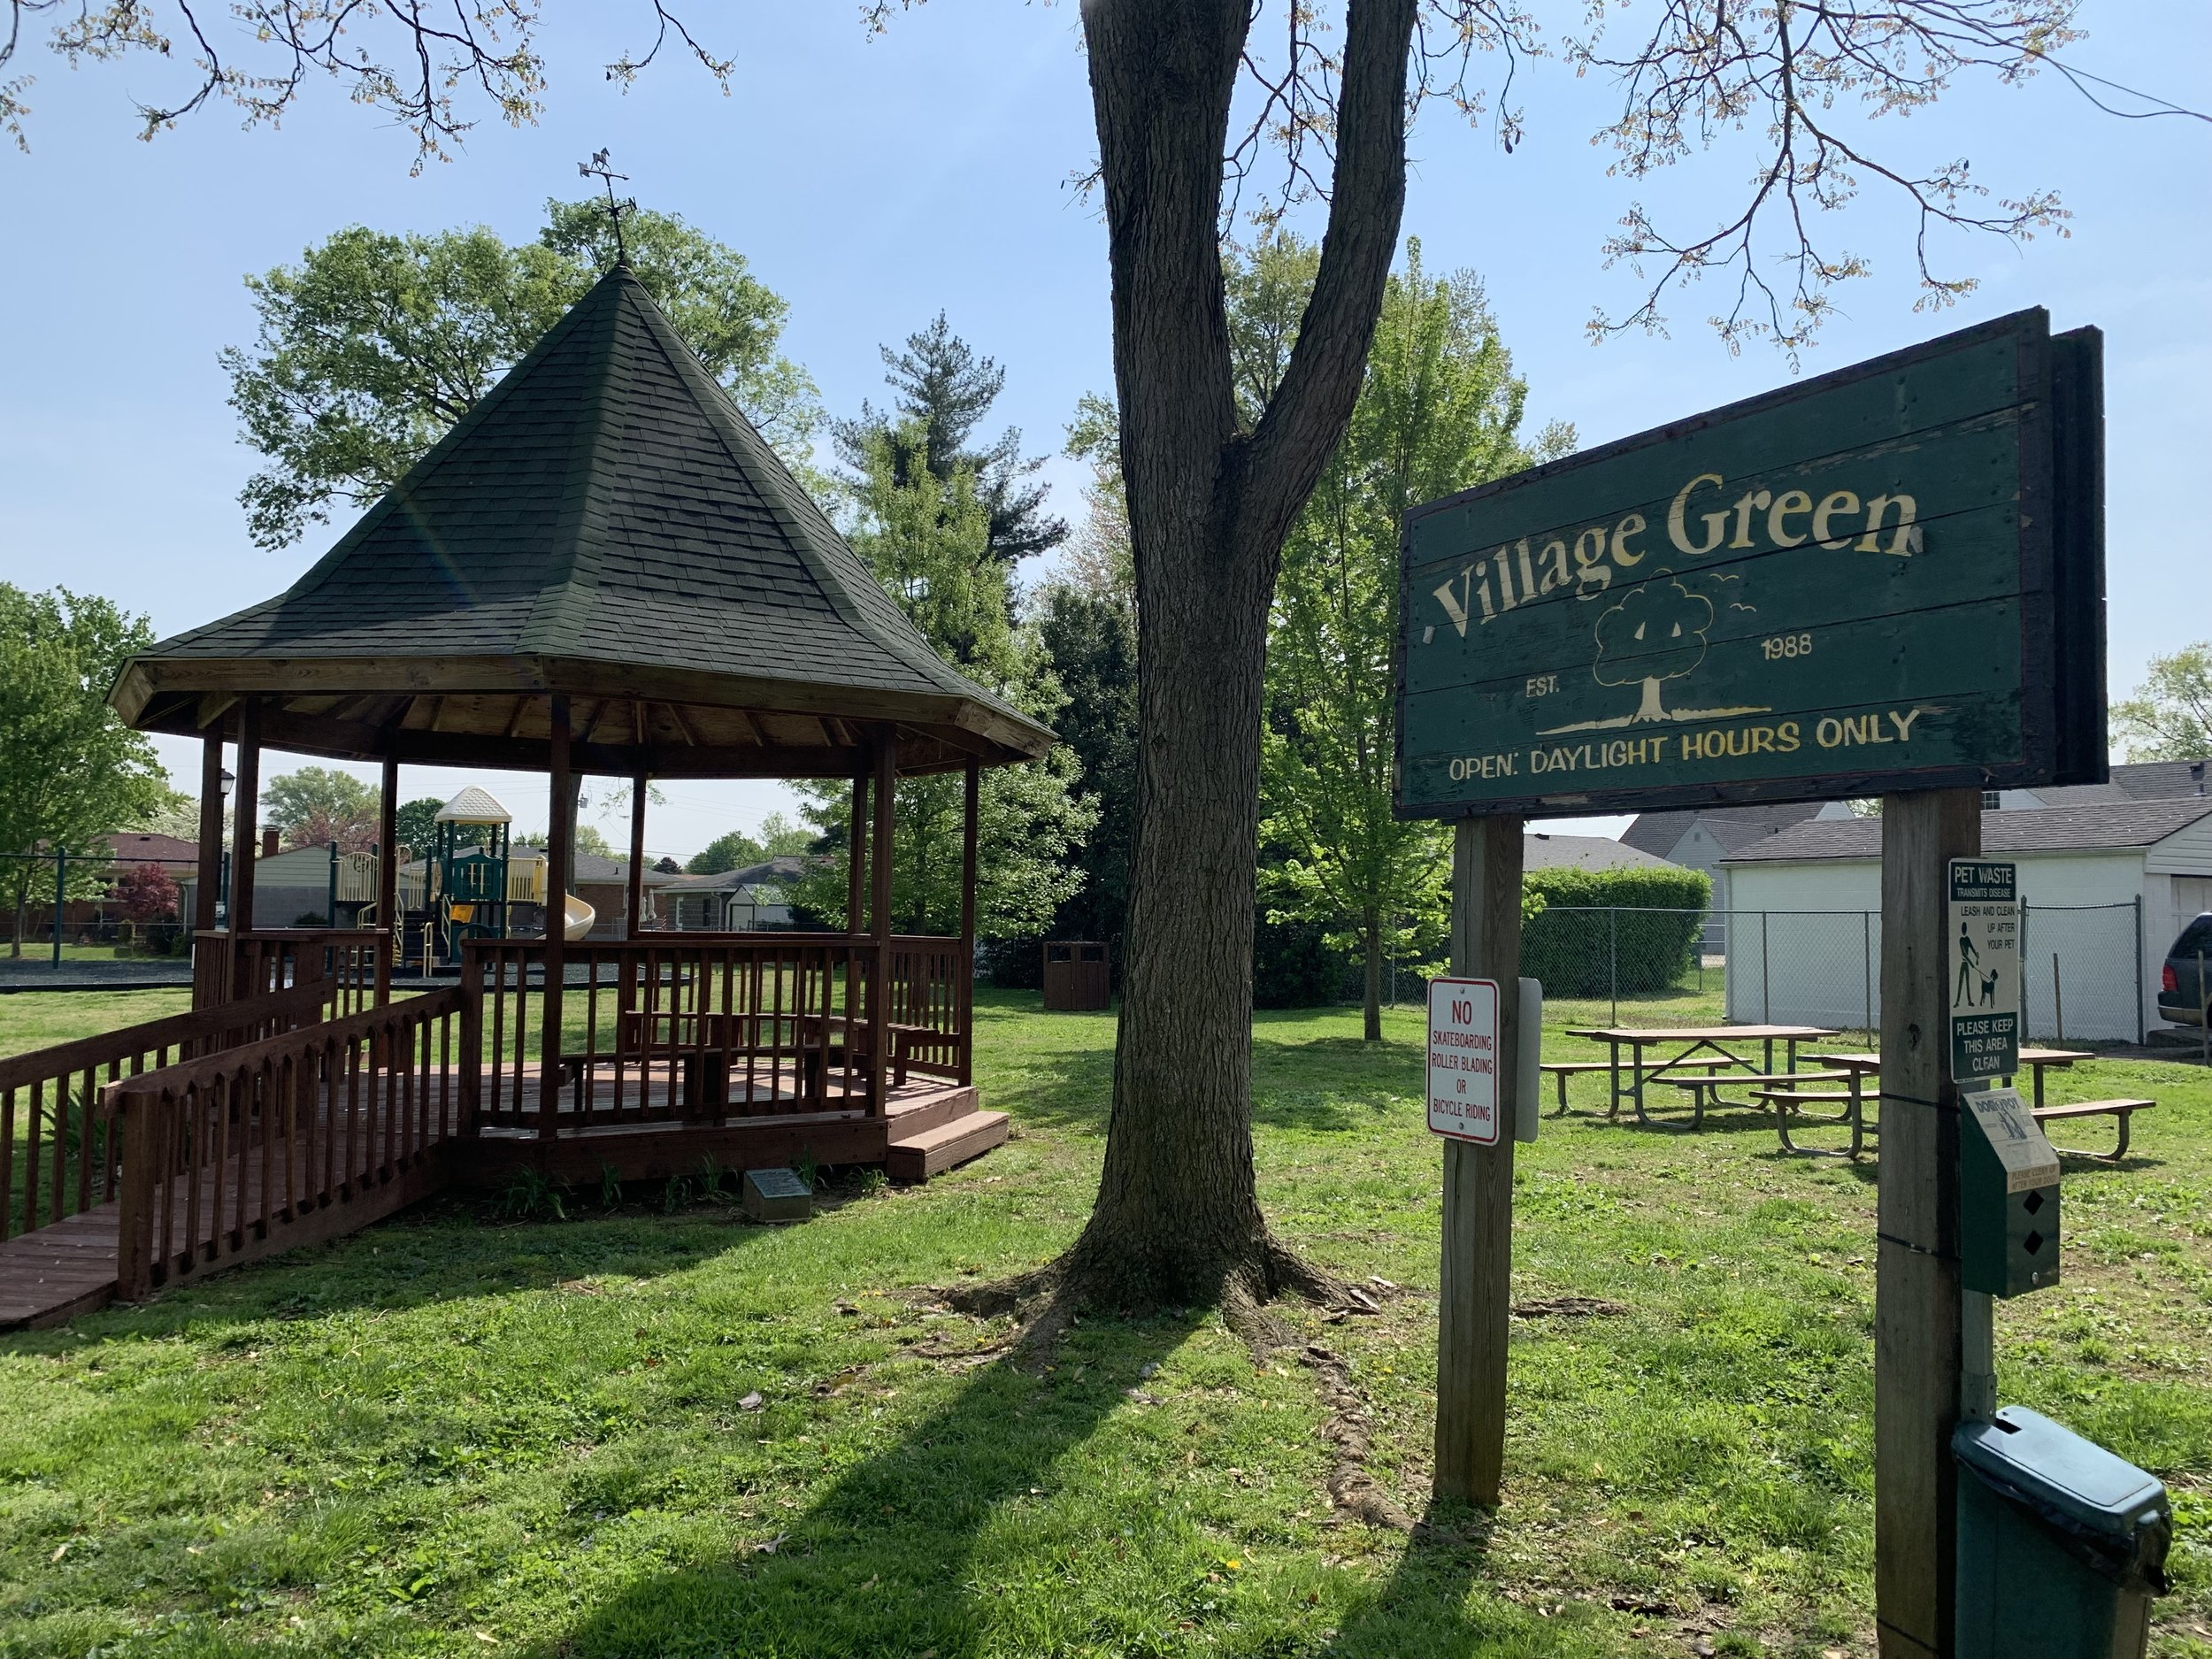 The village green park - The Village Green Park is located on Alexander Avenue, between Melford Avenue and Perennial Drive. We have a gazebo, children's playground, picnic tables, and some wonderful green space! The Park is open daily from dawn to dusk.